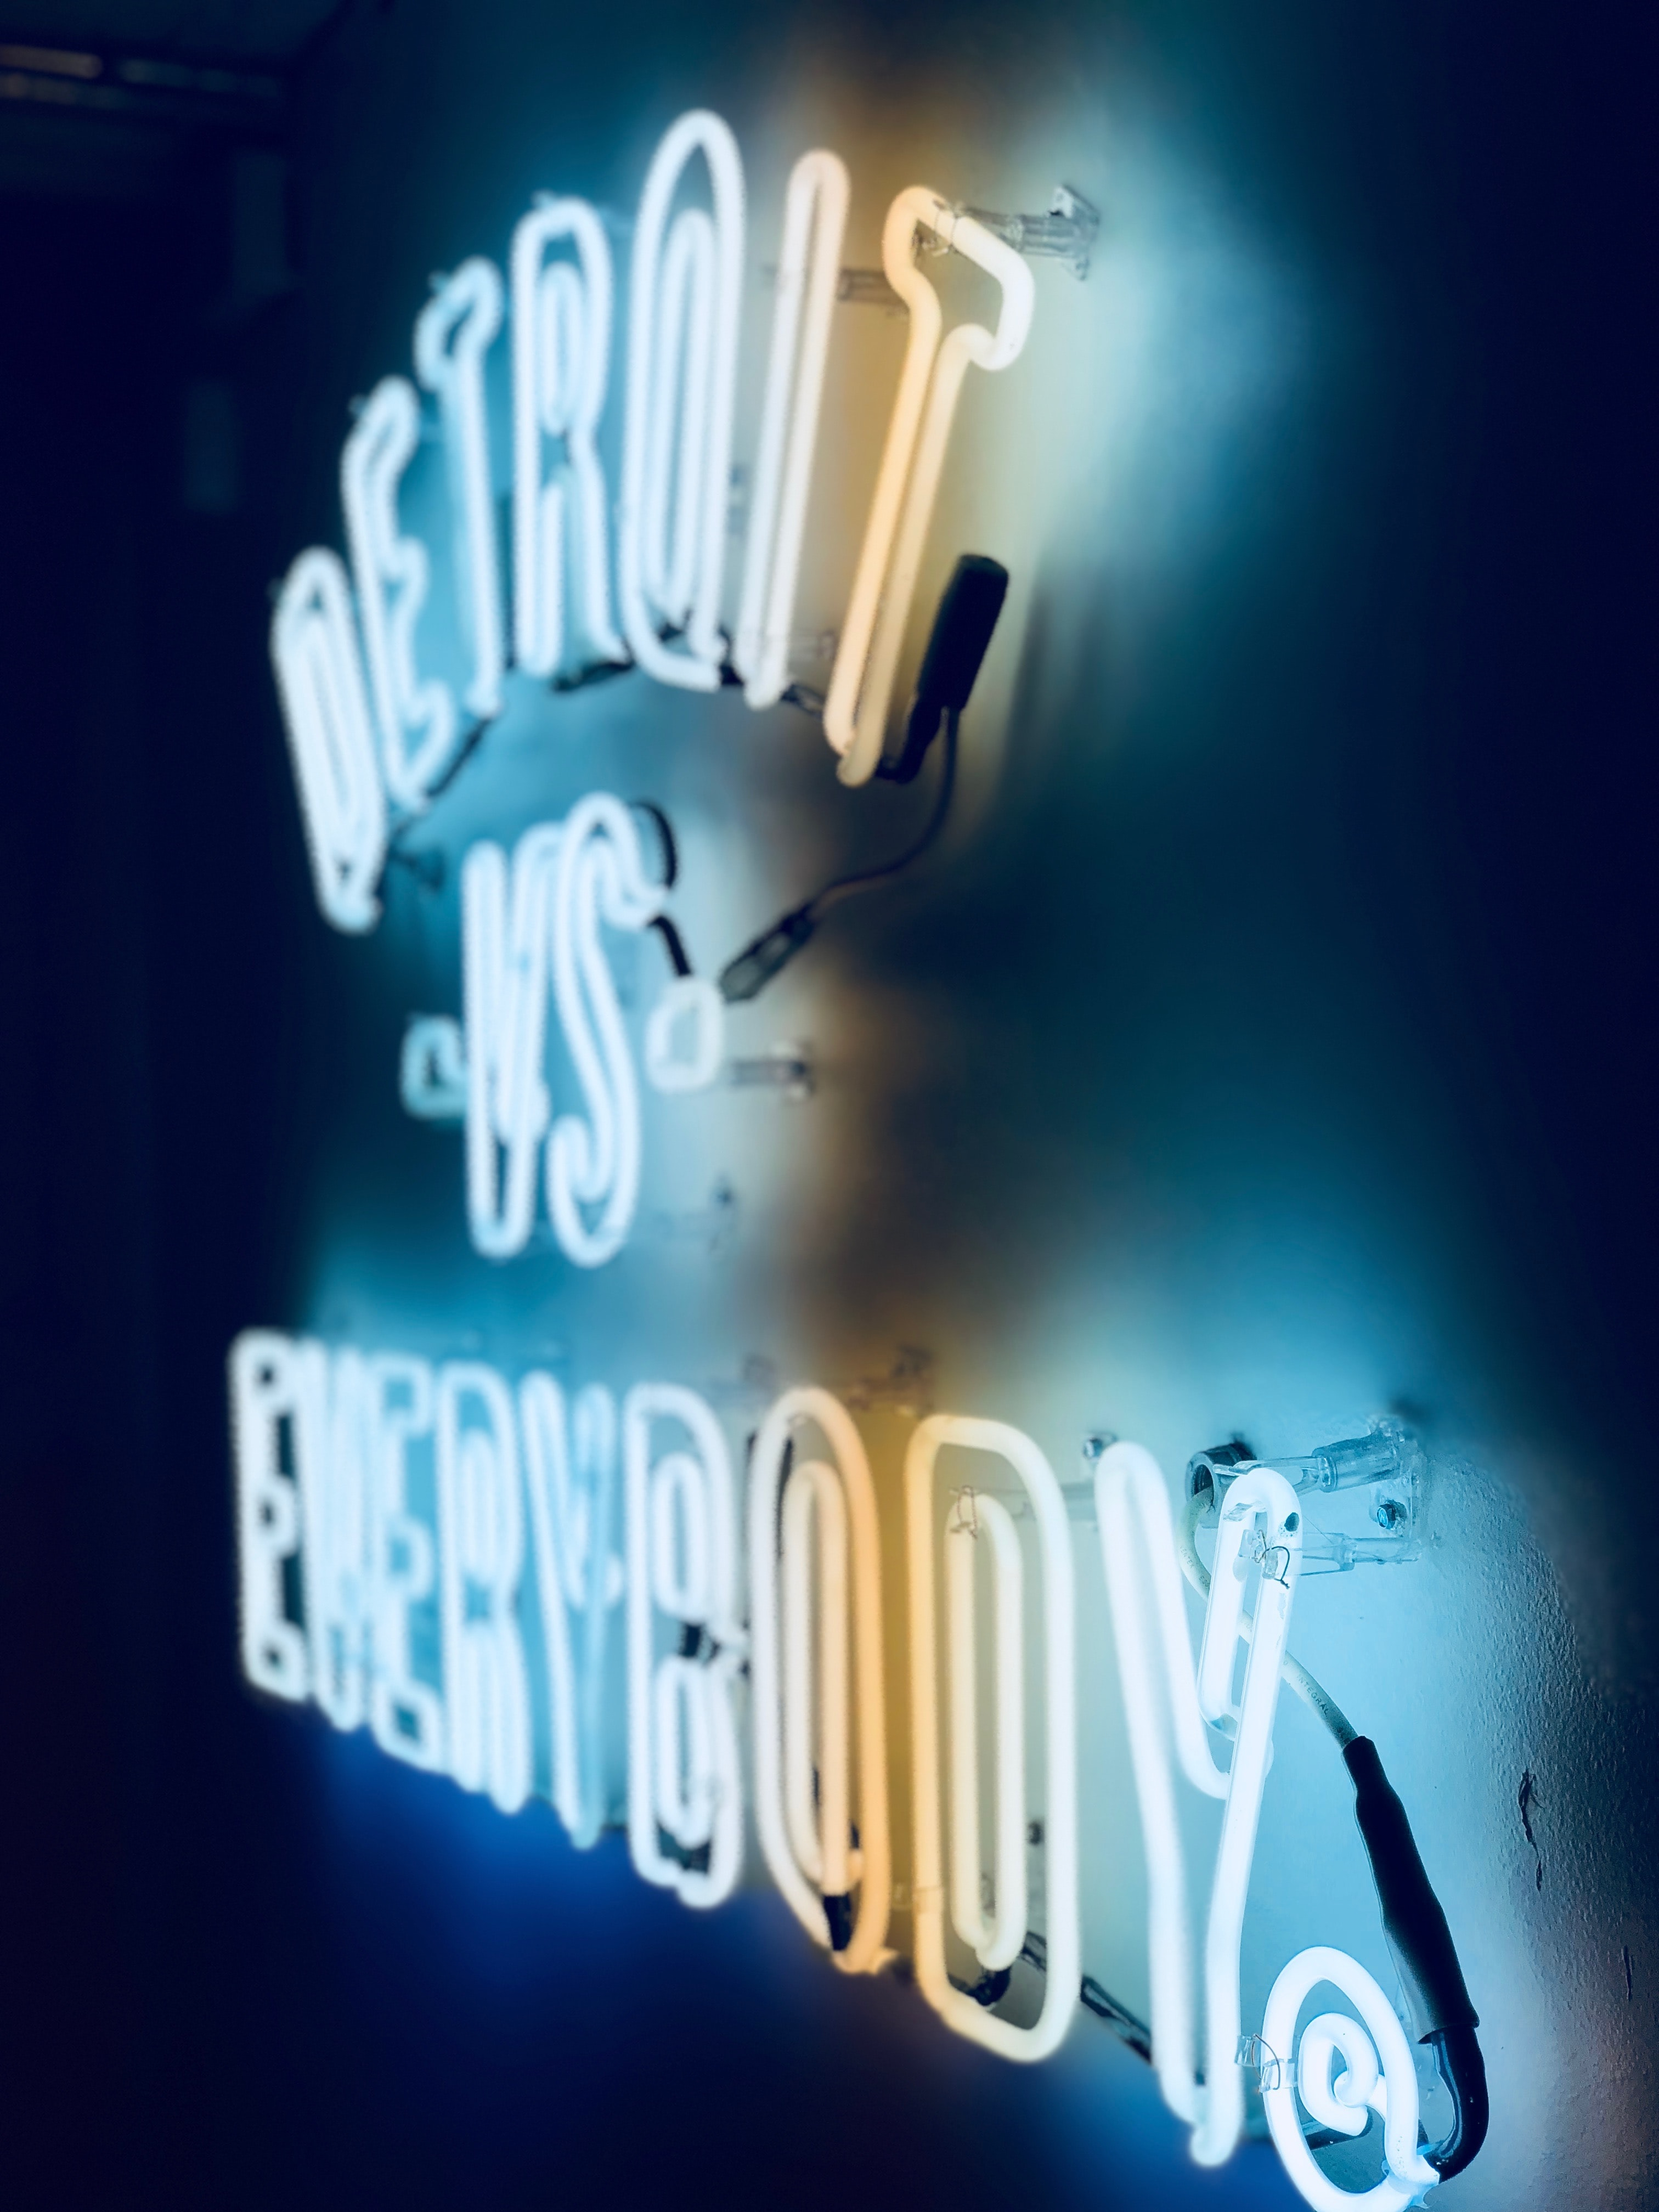 Detroit vs Everybody neon light signage